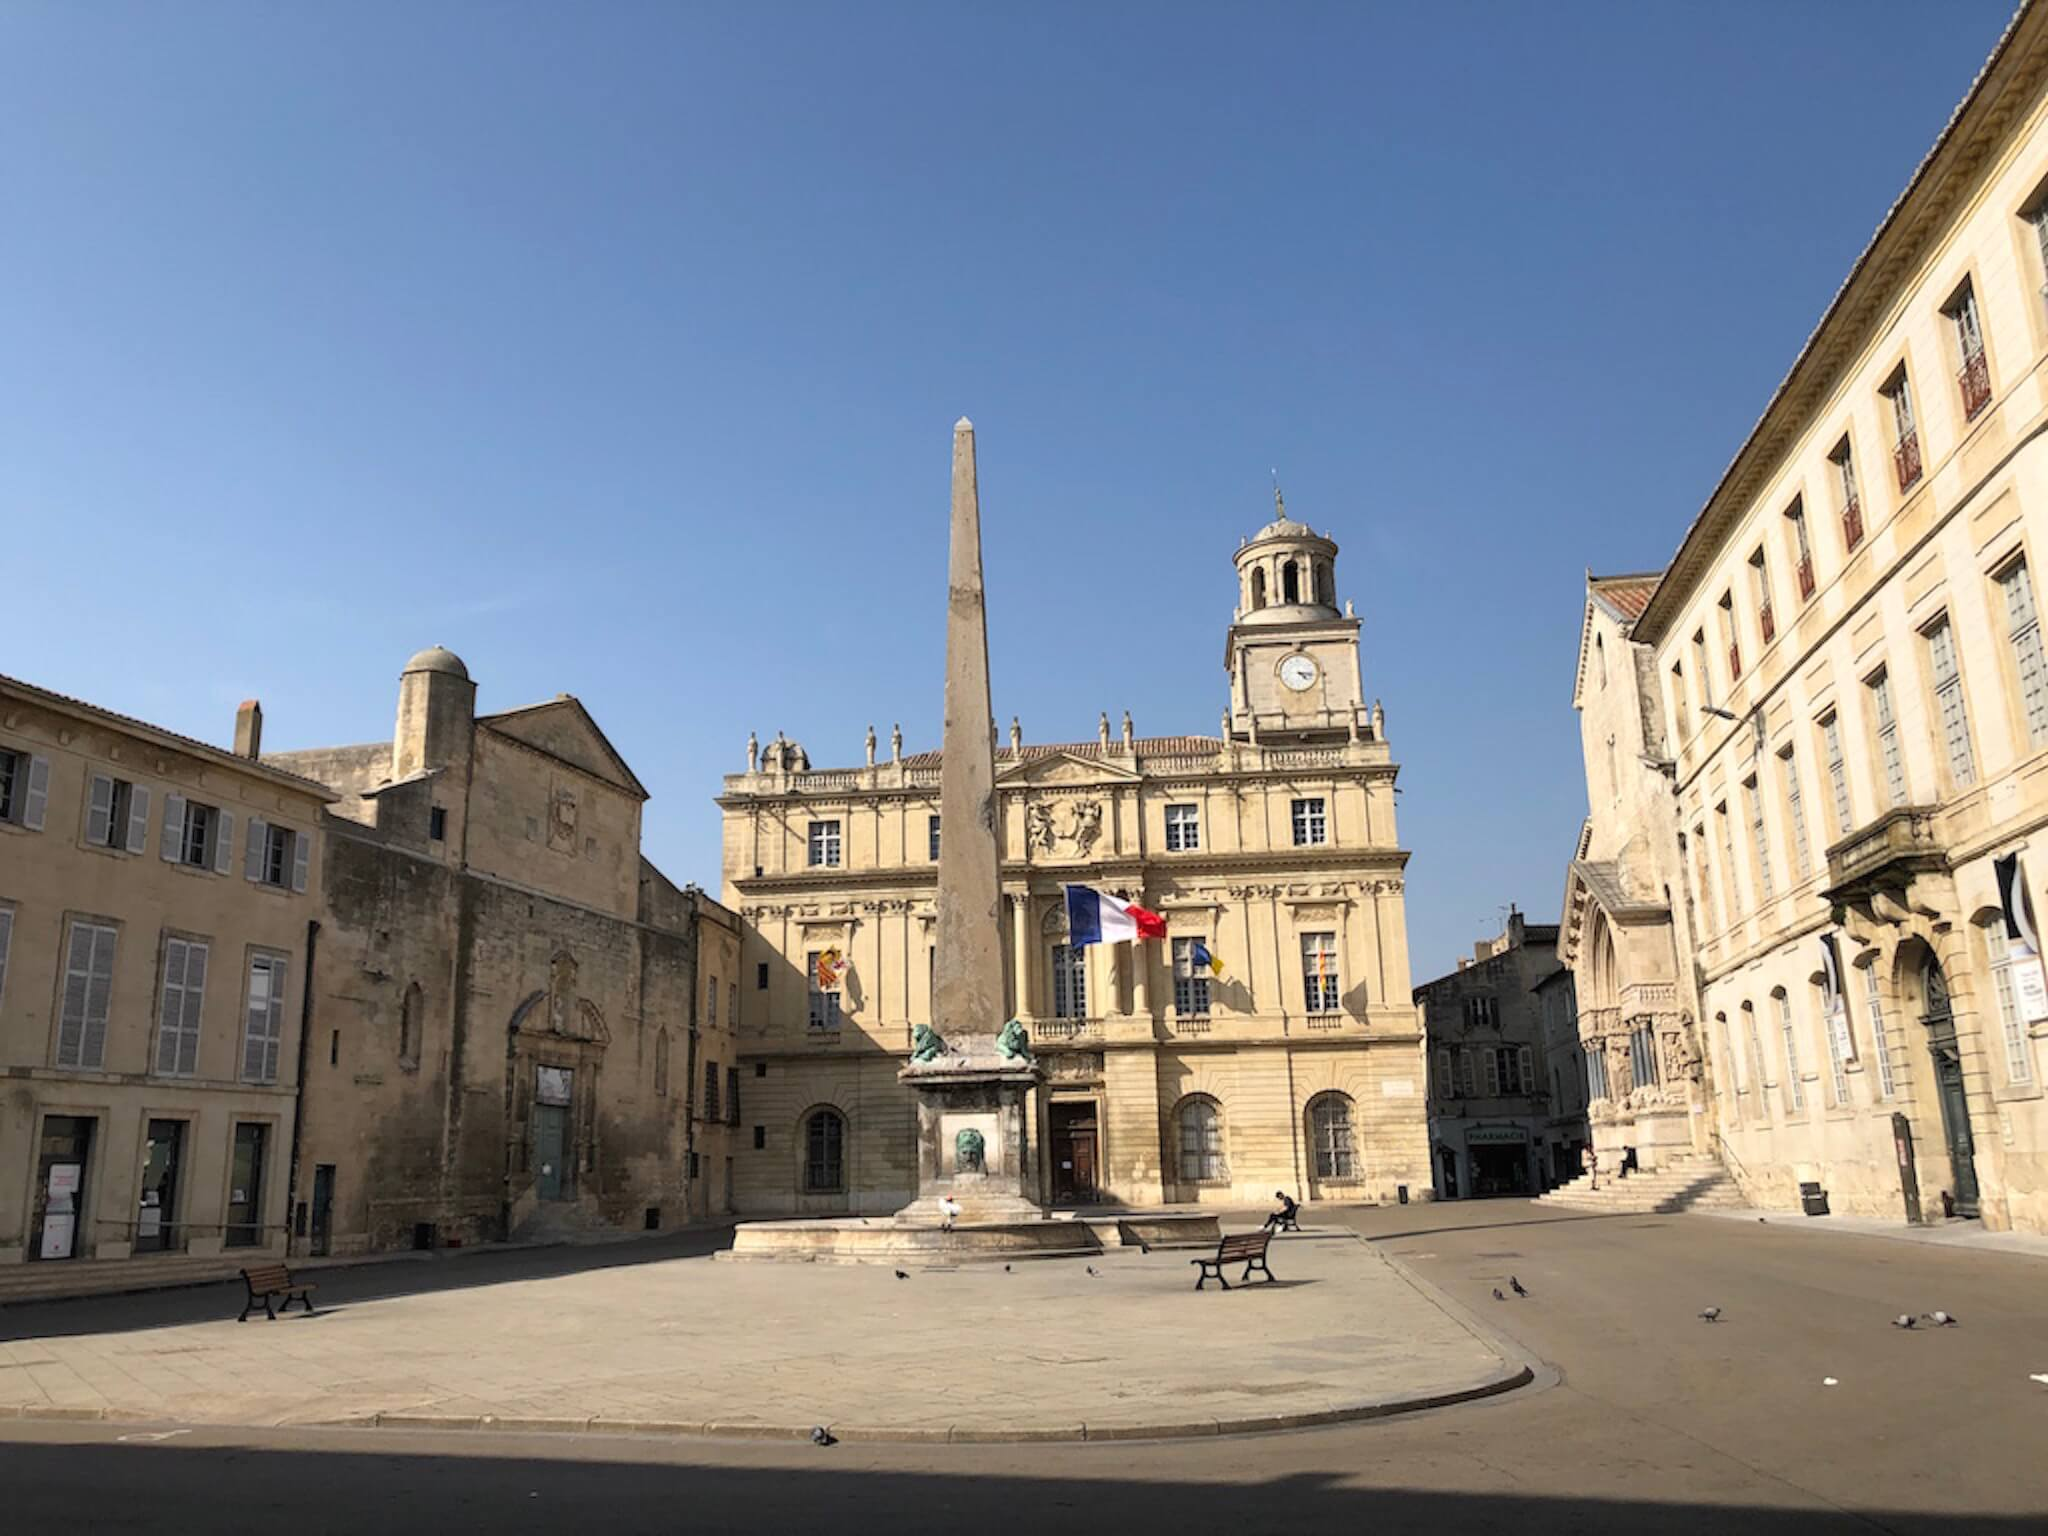 A sunny square in Arles, France